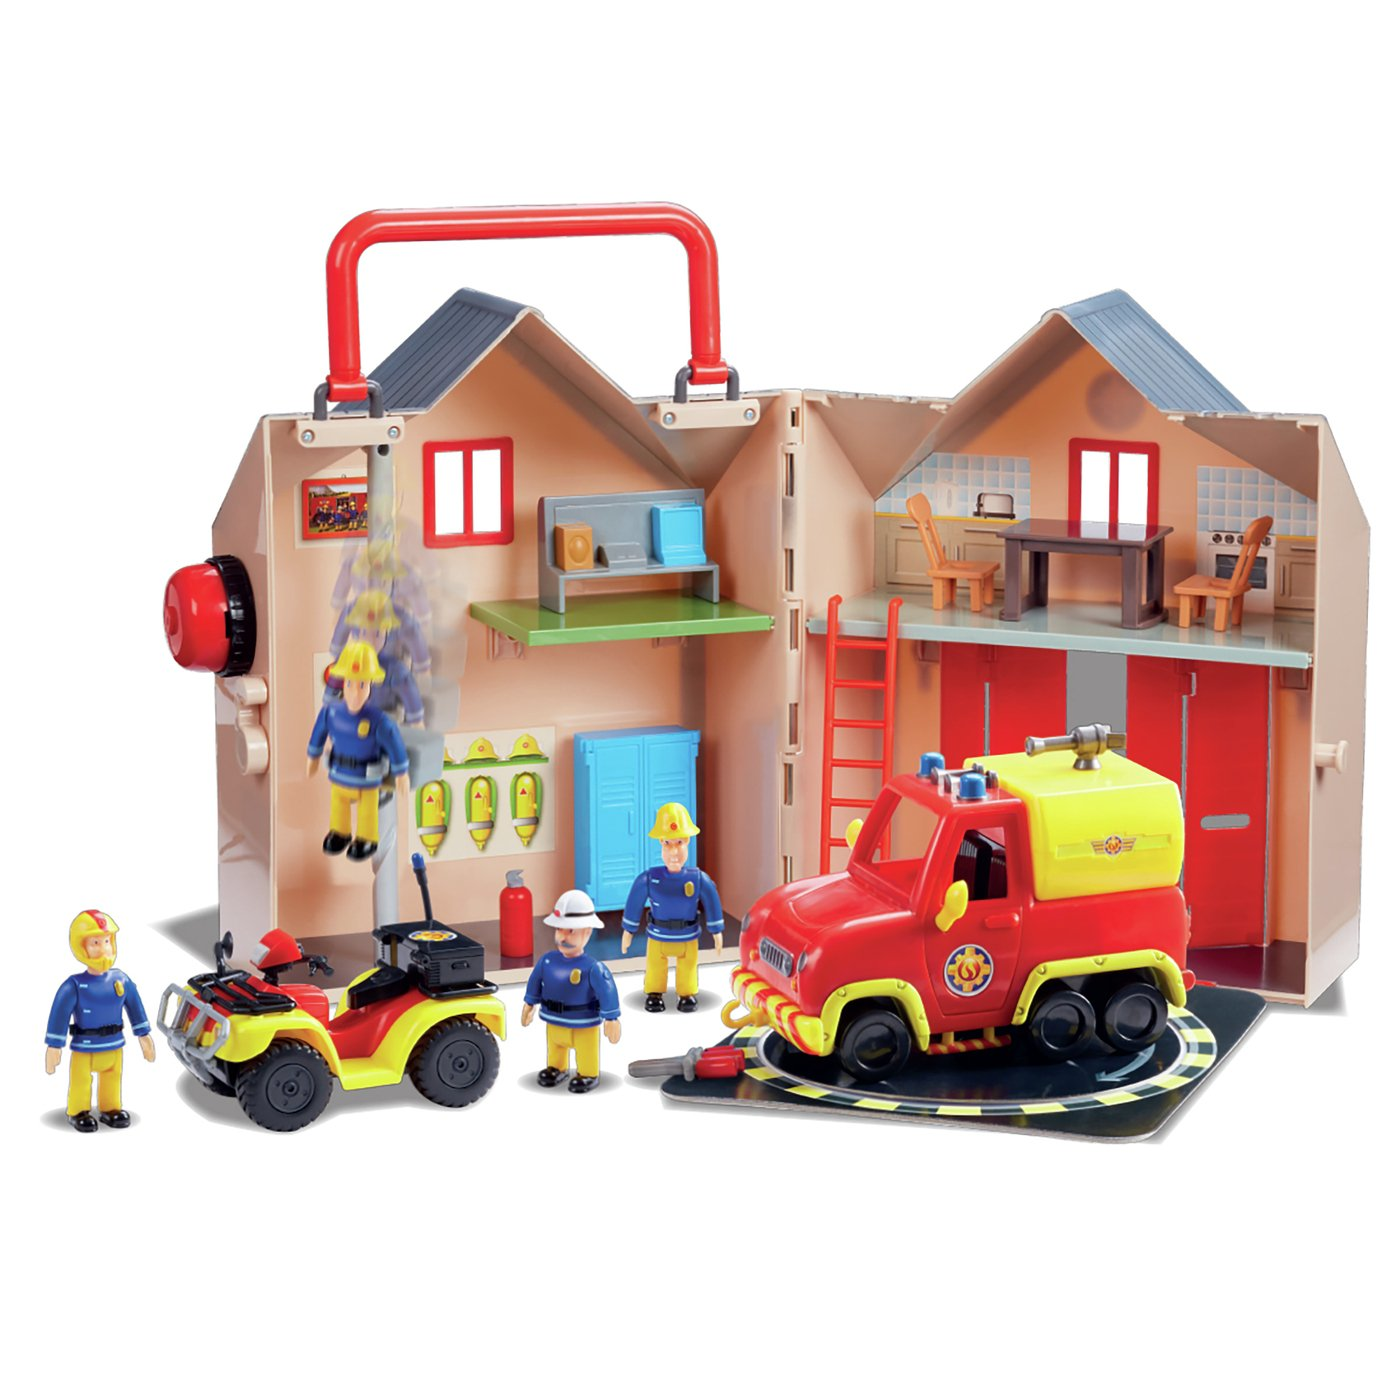 Image of Fireman Sam - Pontypandy Value Set.